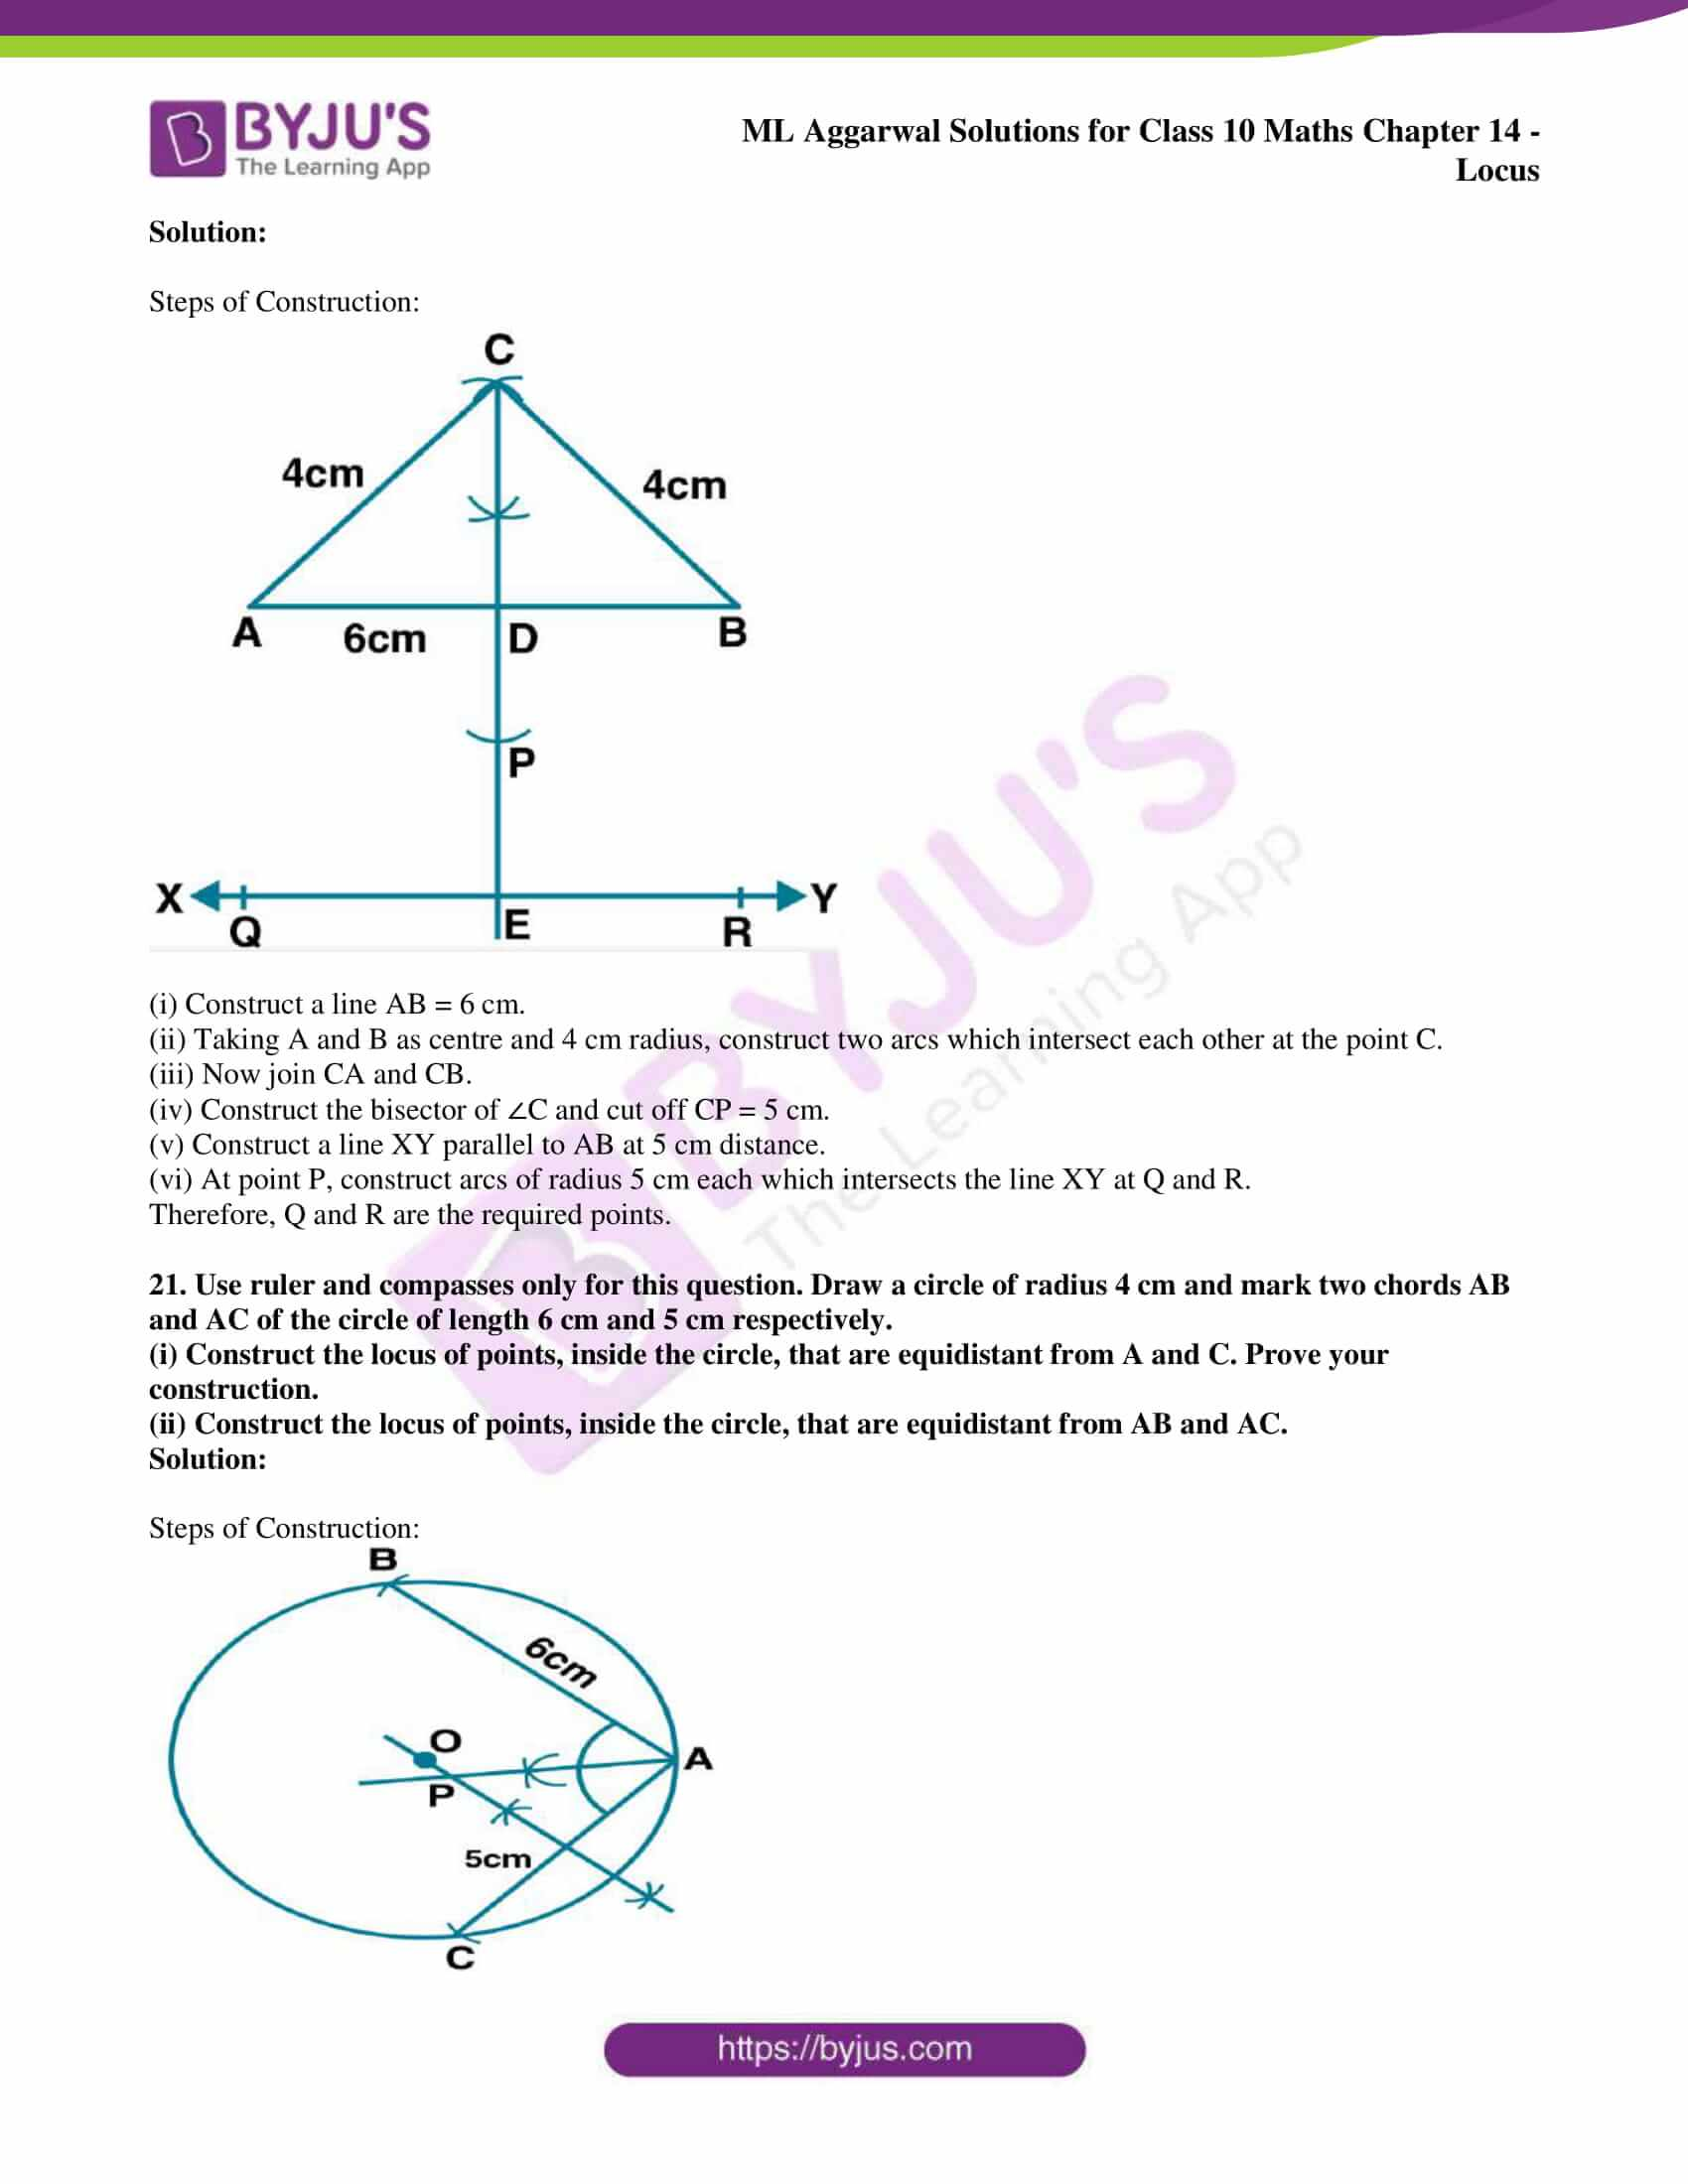 ml aggarwal solutions for class 10 maths chapter 14 17